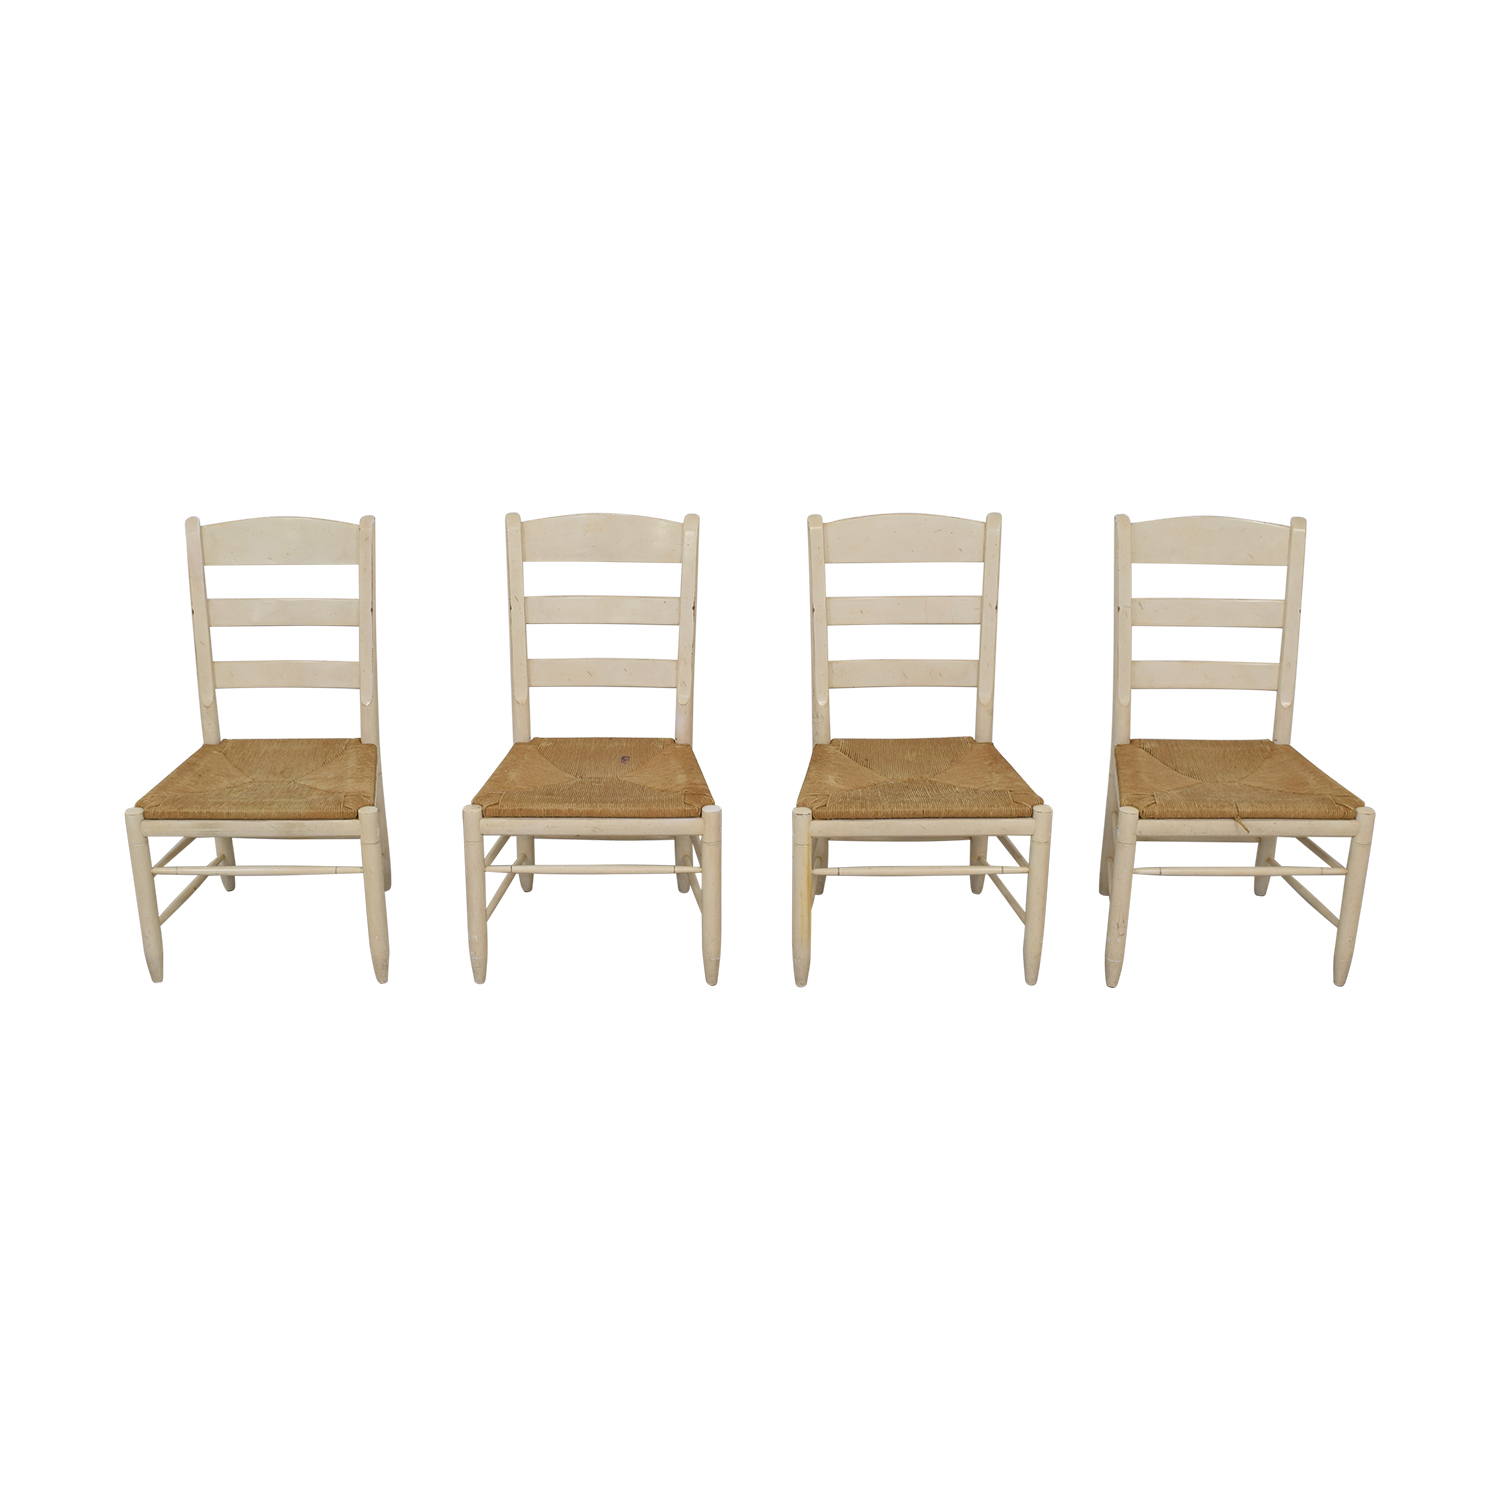 Ethan Allen New Country Ladderback White Side Chairs Ethan Allen